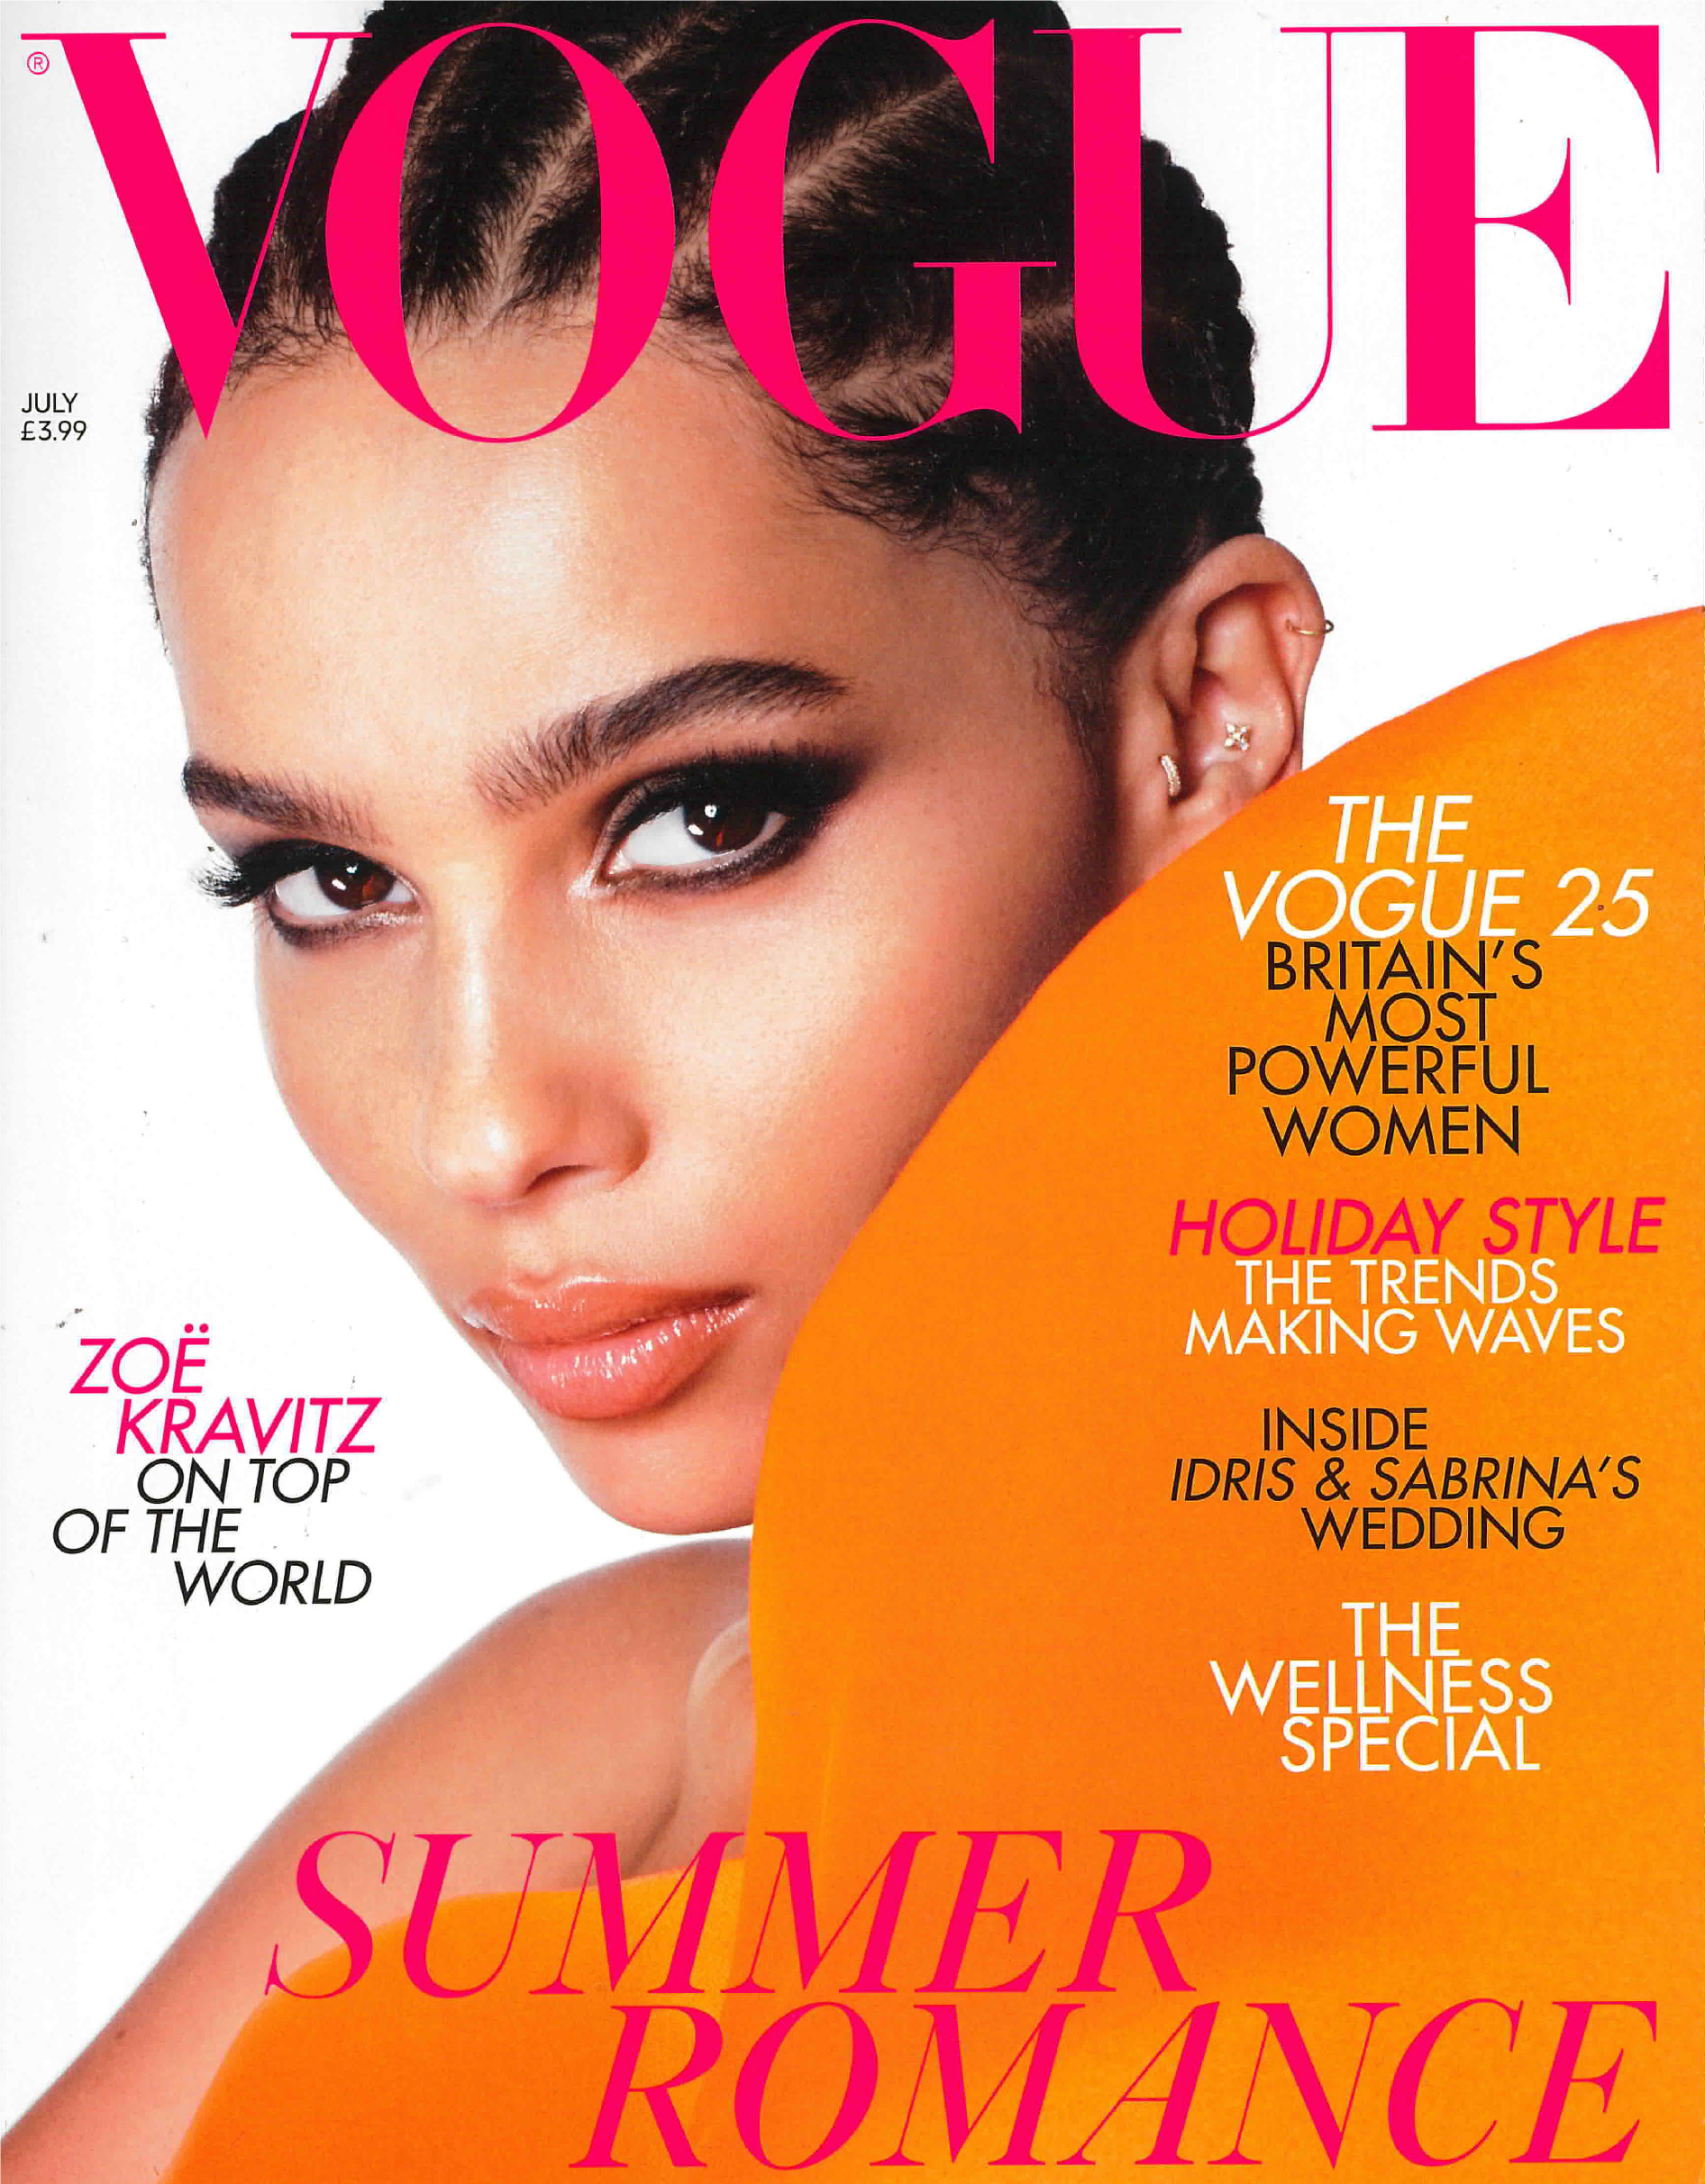 helena_Jay_Vogue_cover.jpg